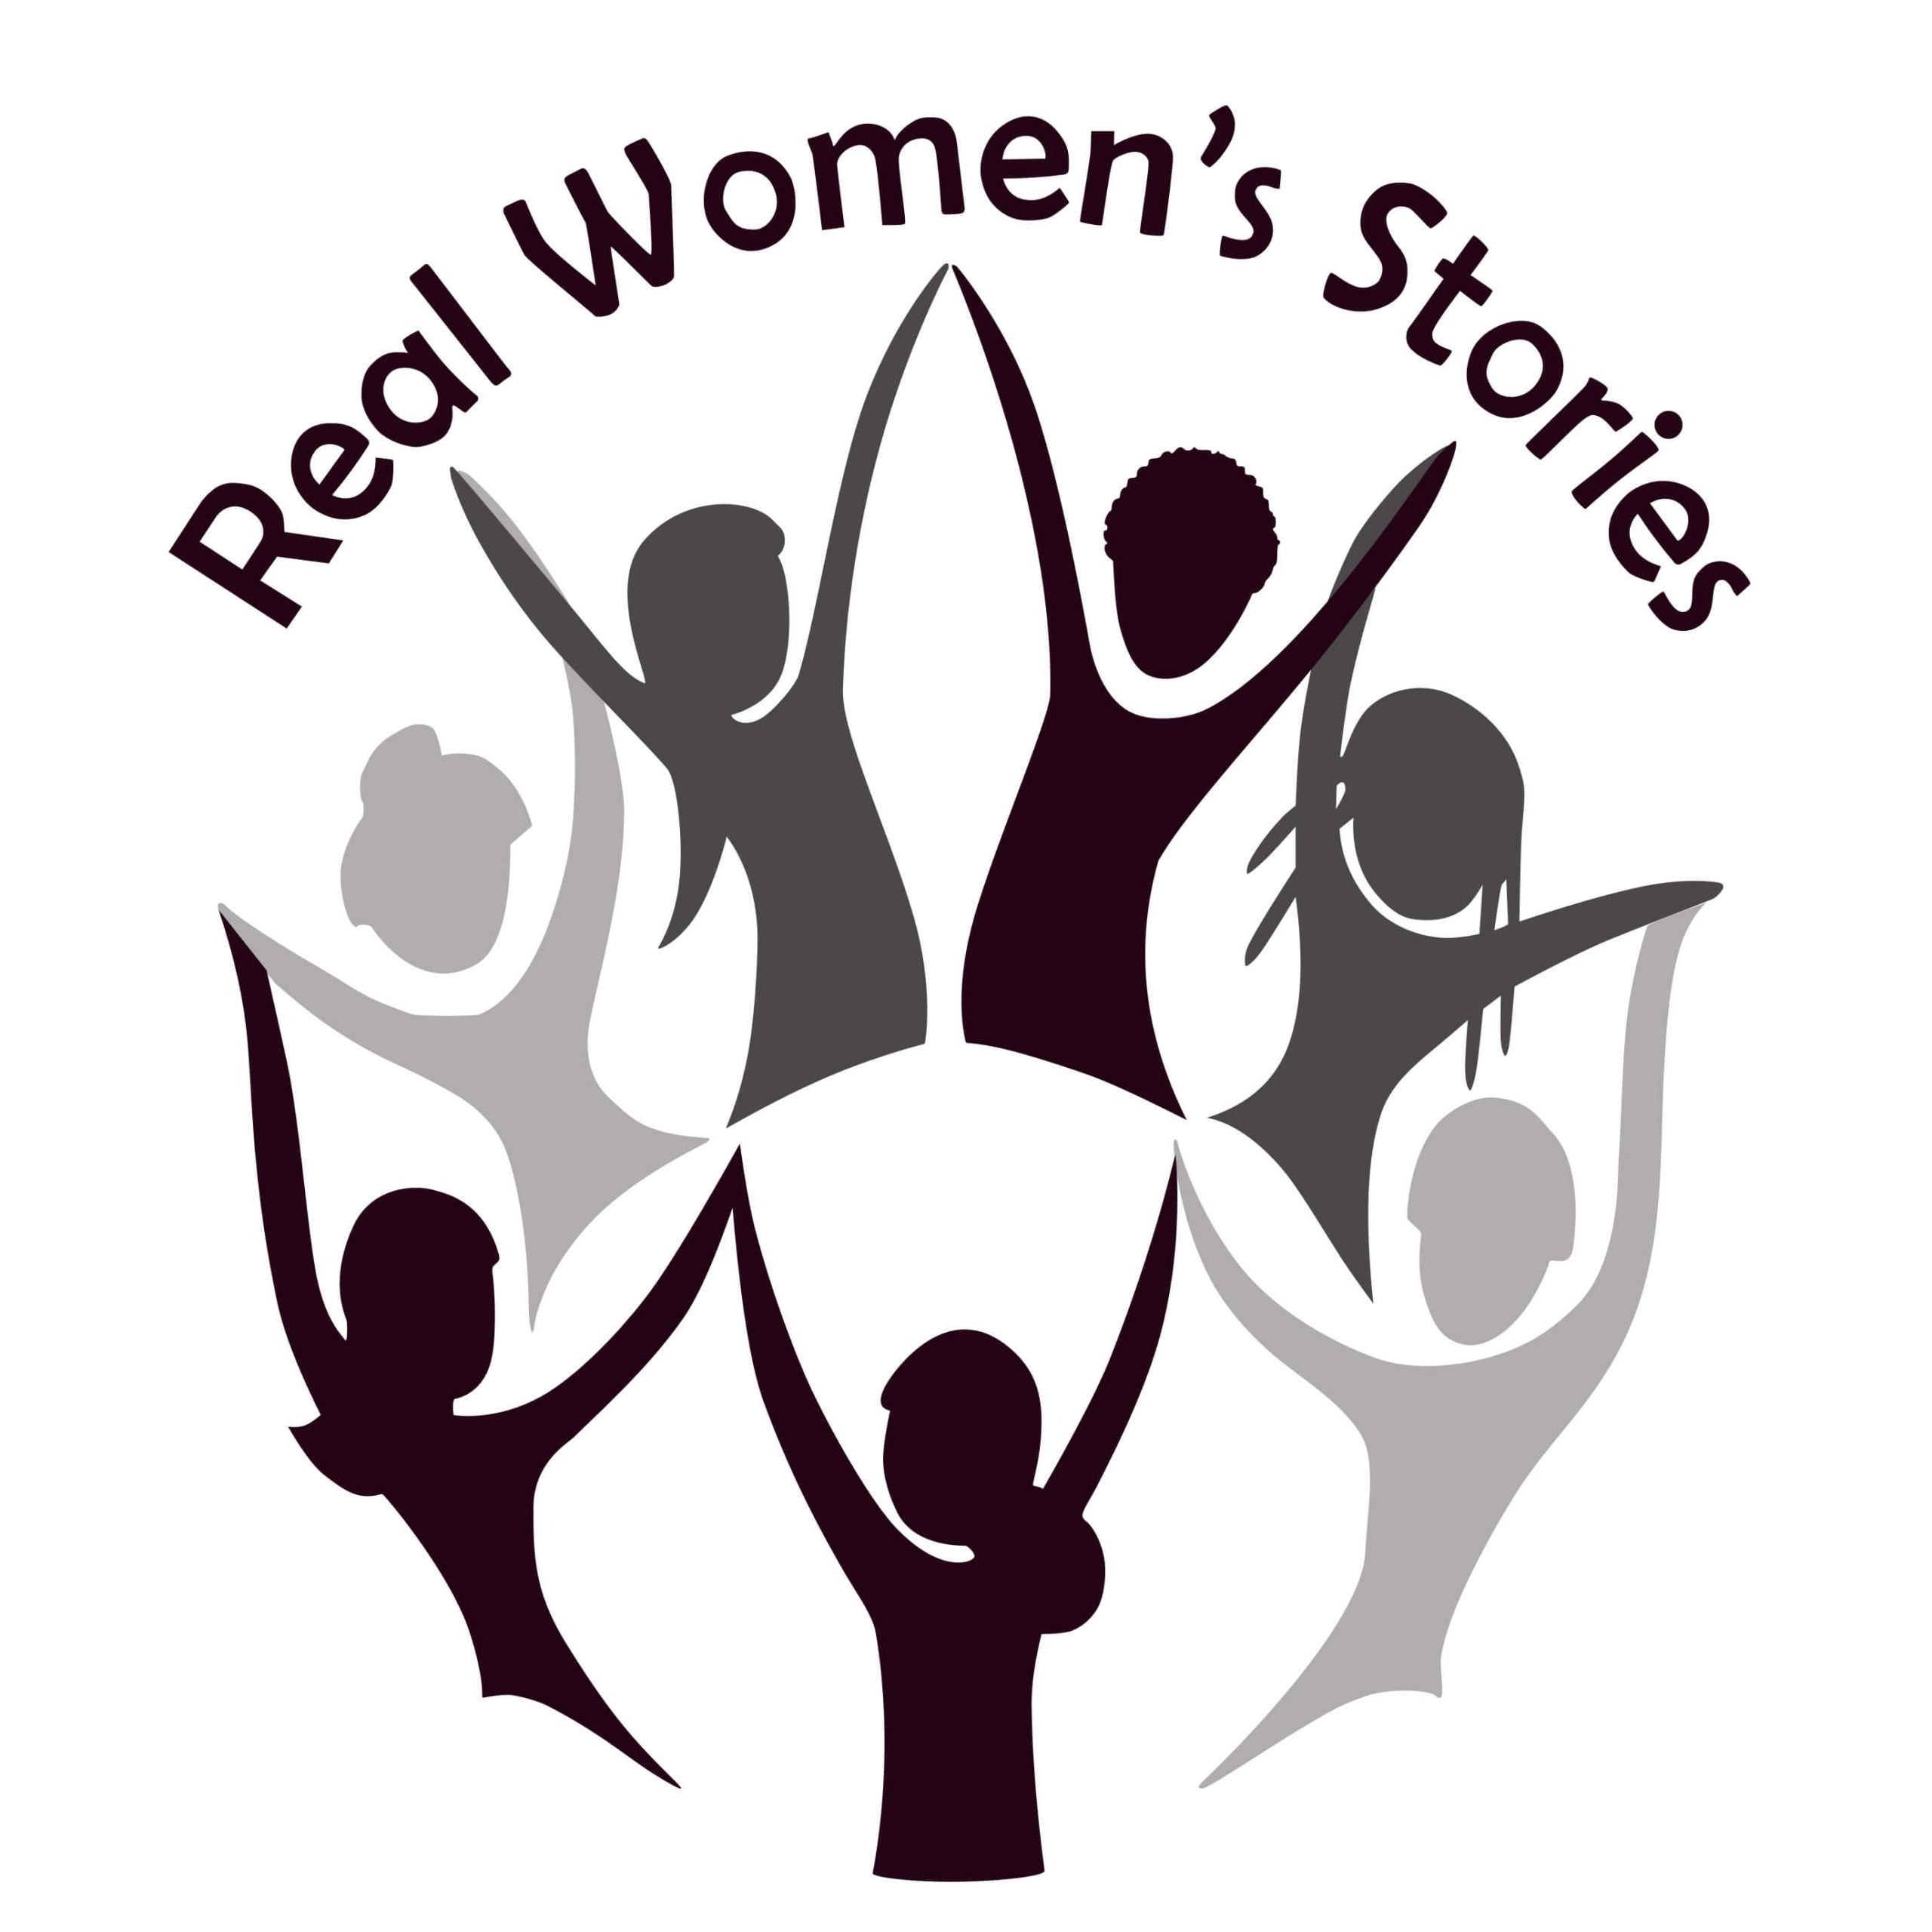 Real Women's Stories Logo. Pink oval with general shadow images of women holding hands